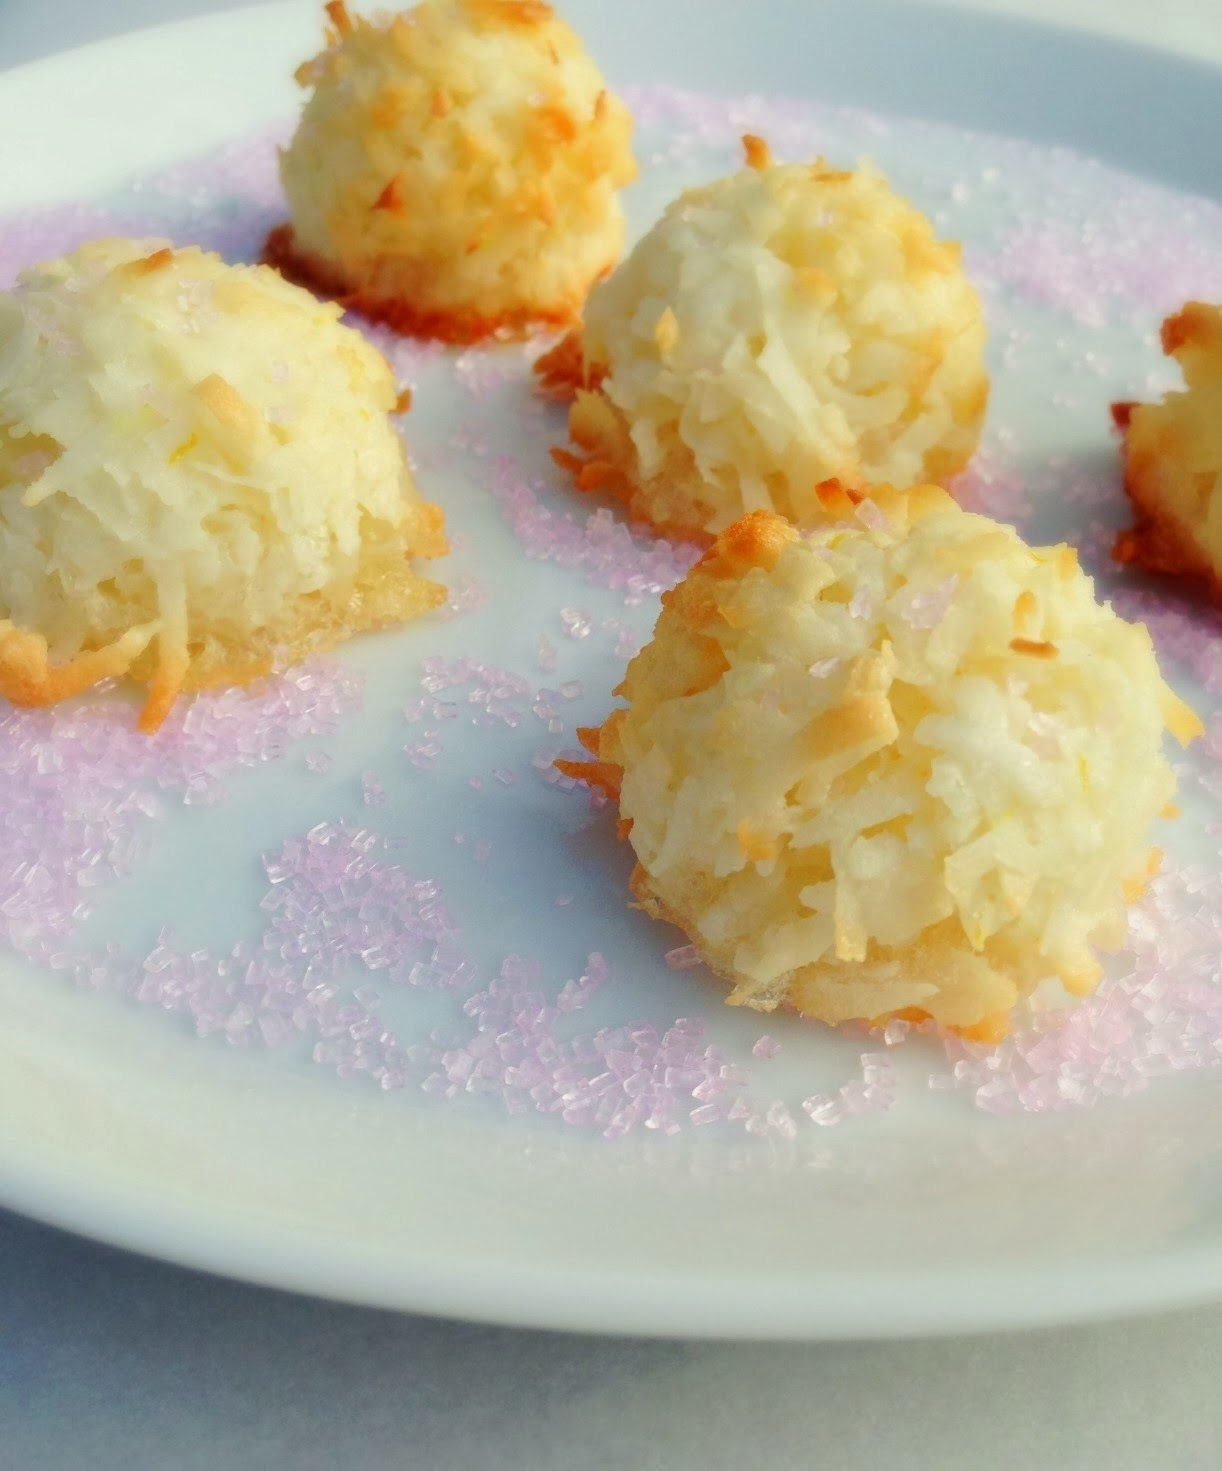 Gluten Free Coconut Macaroons for Valentine's Day